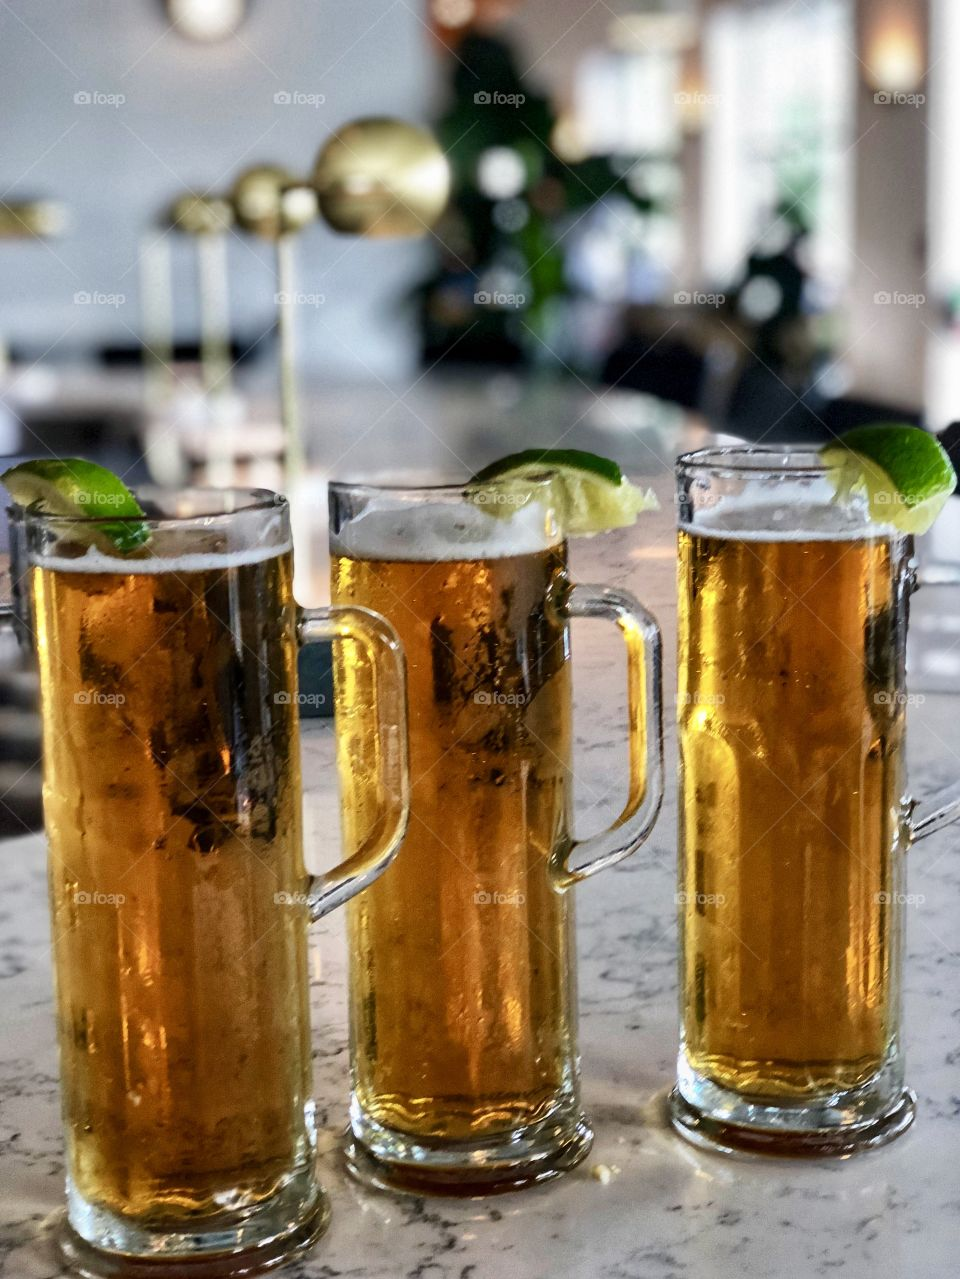 Ice cold Beer in Tall Mugs! Hanks in Austin, Texas Lifestyle Photo!